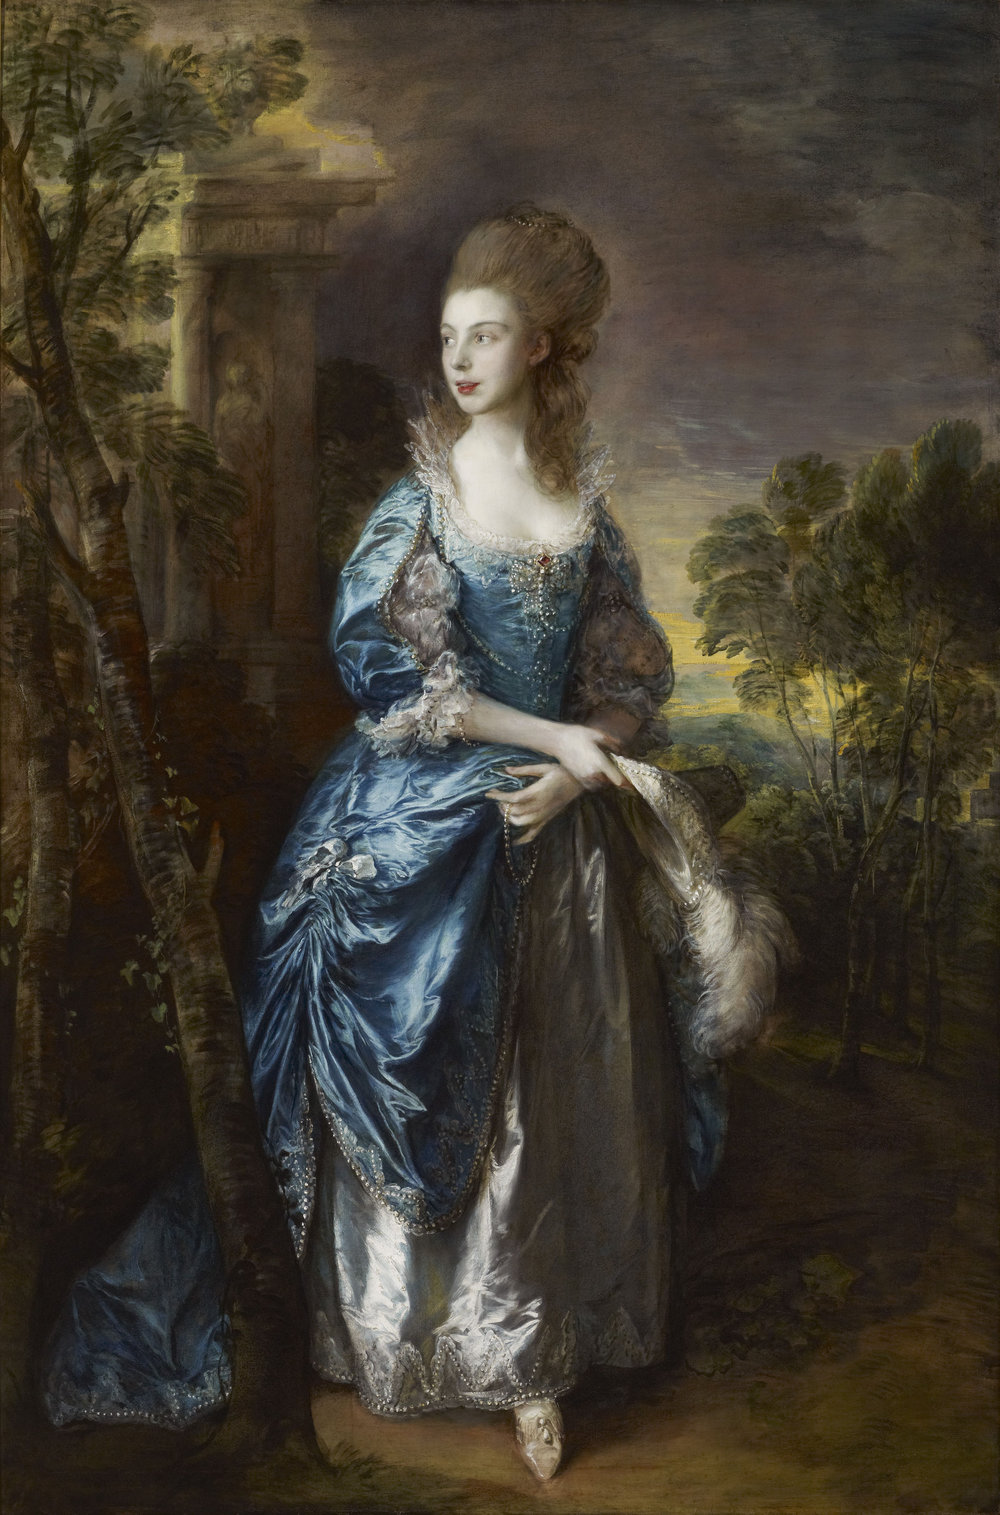 The Honorable Frances Duncombe  (c. 1777) by Thomas Gainsborough. The Frick Collection (New York, NY).